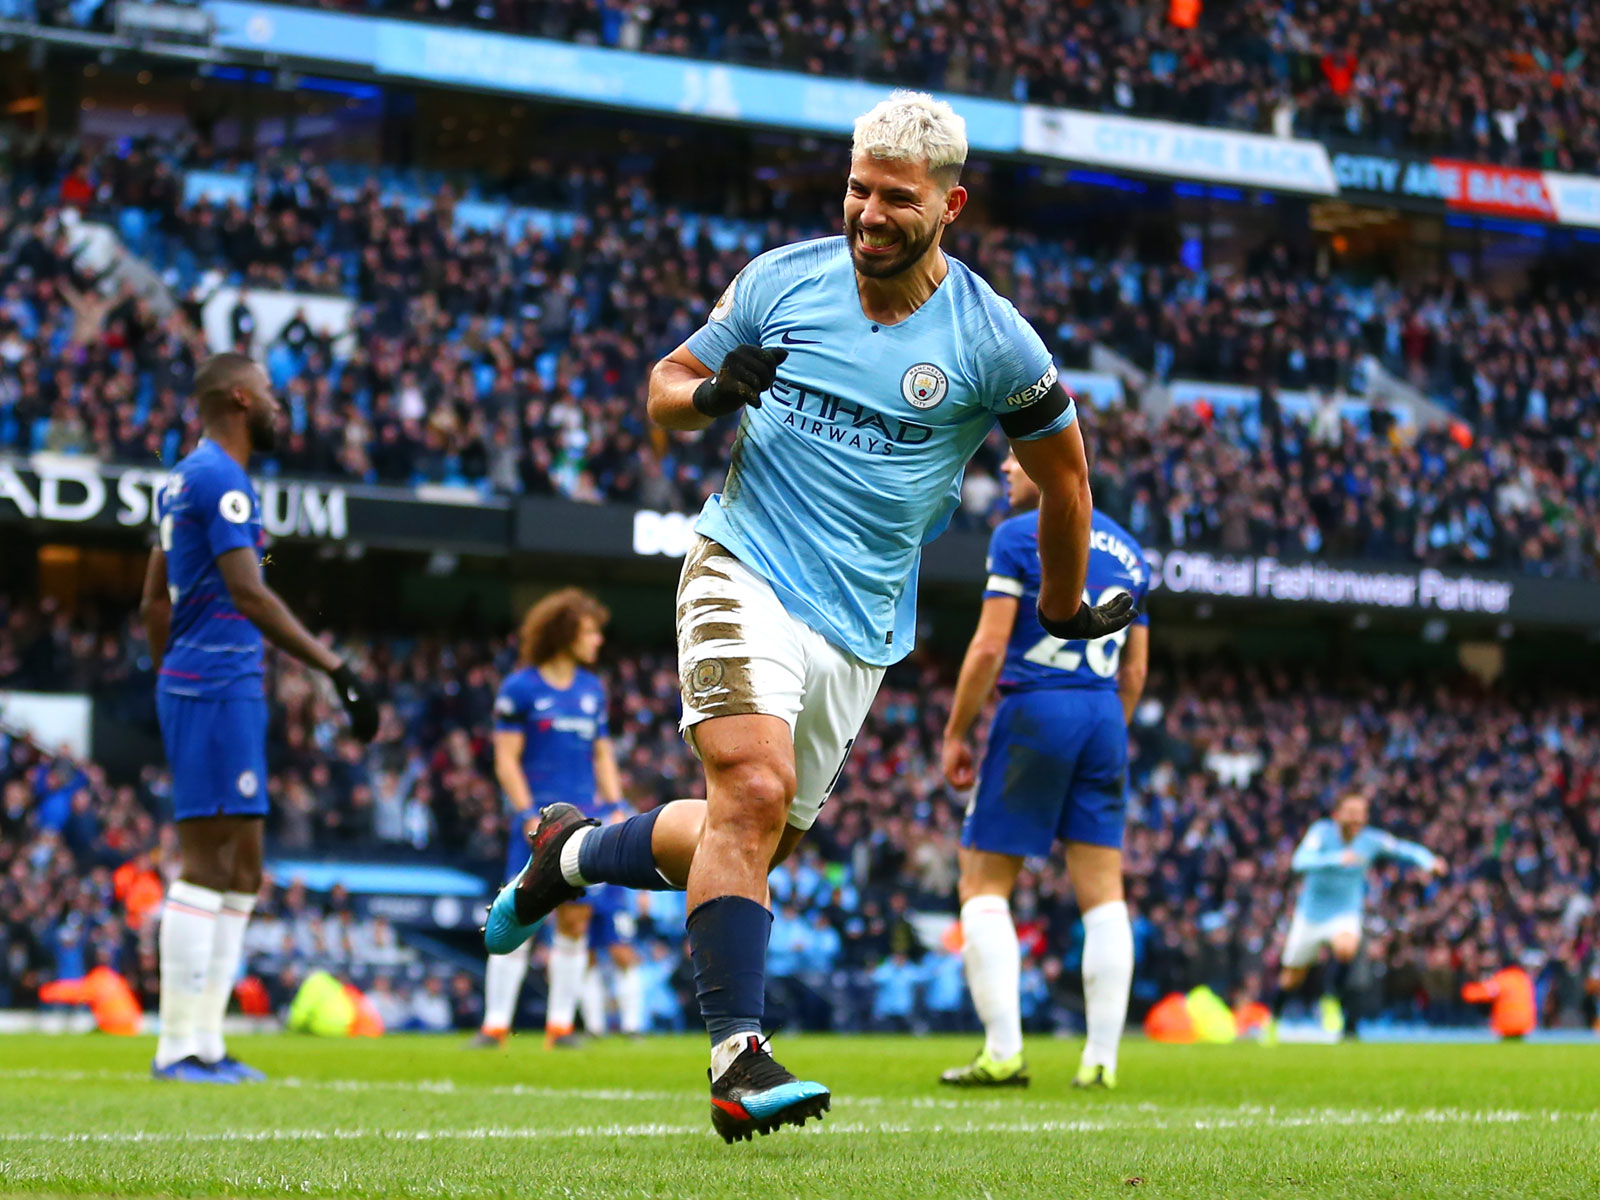 Sergio Aguero scores for Man City vs. Chelsea